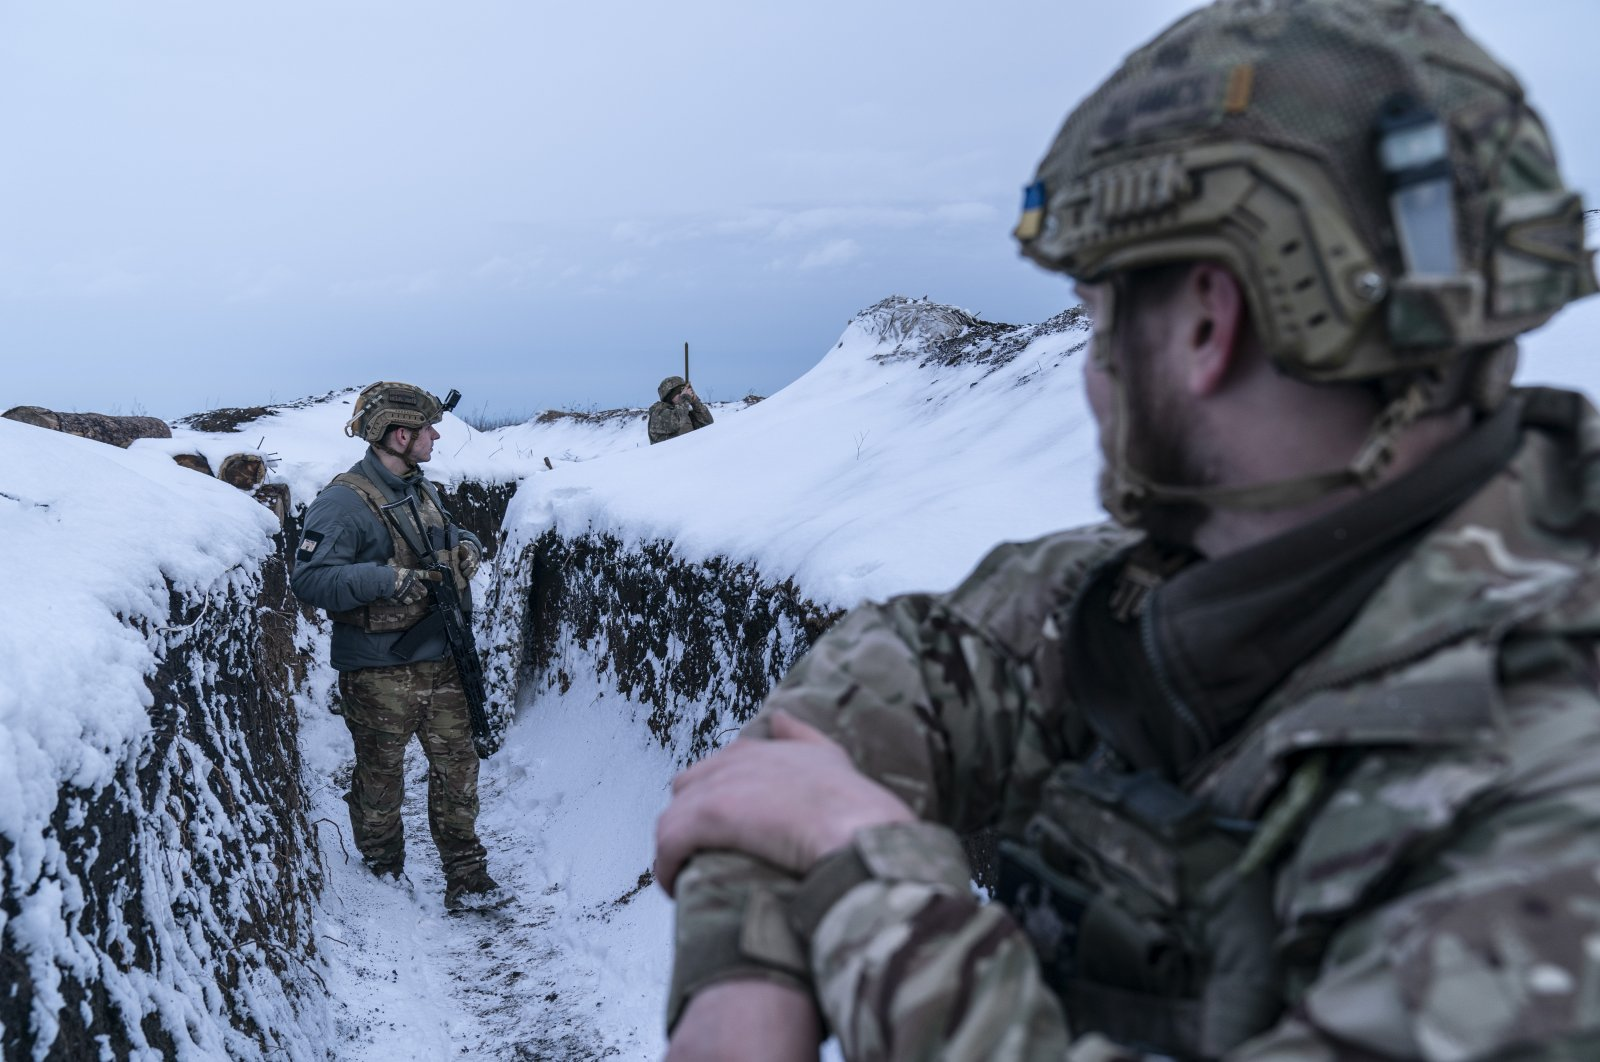 Ukrainian servicemen walk along a snow-covered trench guarding their position at the frontline near Vodiane, about 750 kilometers (468 miles) southeast of Kyiv, eastern Ukraine, March 5, 2021. (AP Photo)